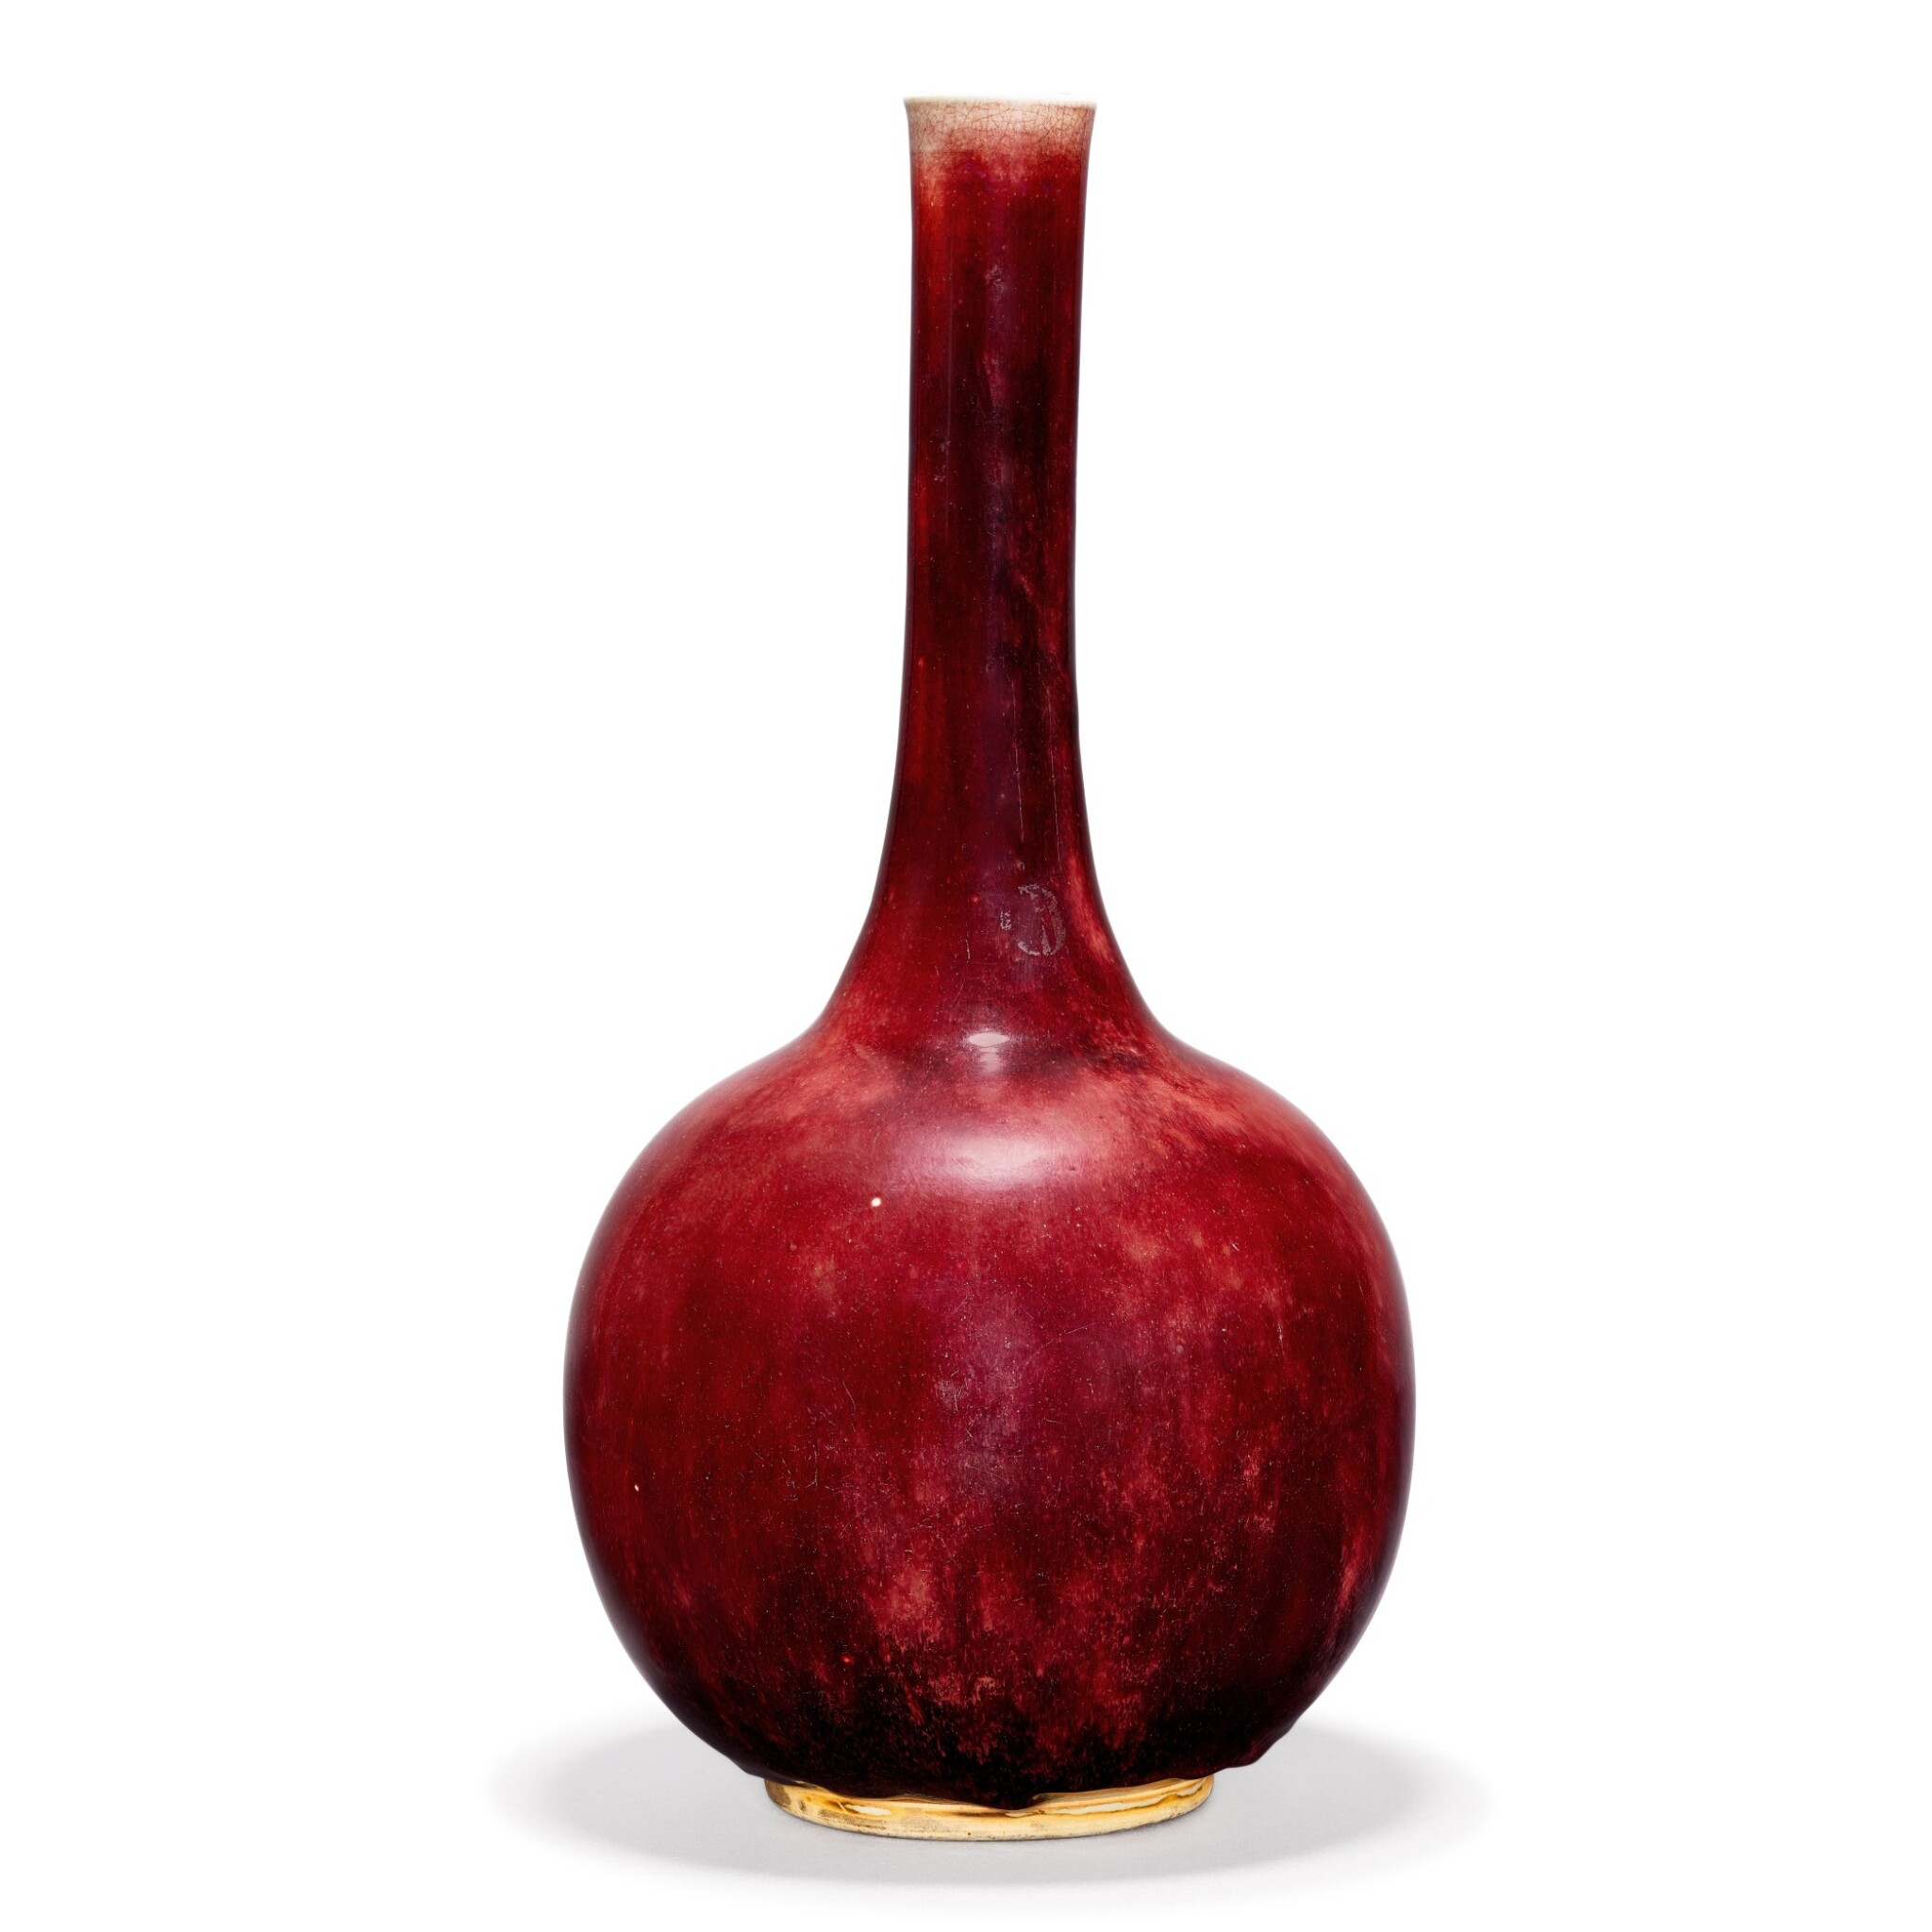 View full screen - View 1 of Lot 112. A LARGE LANGYAO BOTTLE VASE QING DYNASTY, KANGXI PERIOD | 清康熙 郎窰紅釉長頸瓶.